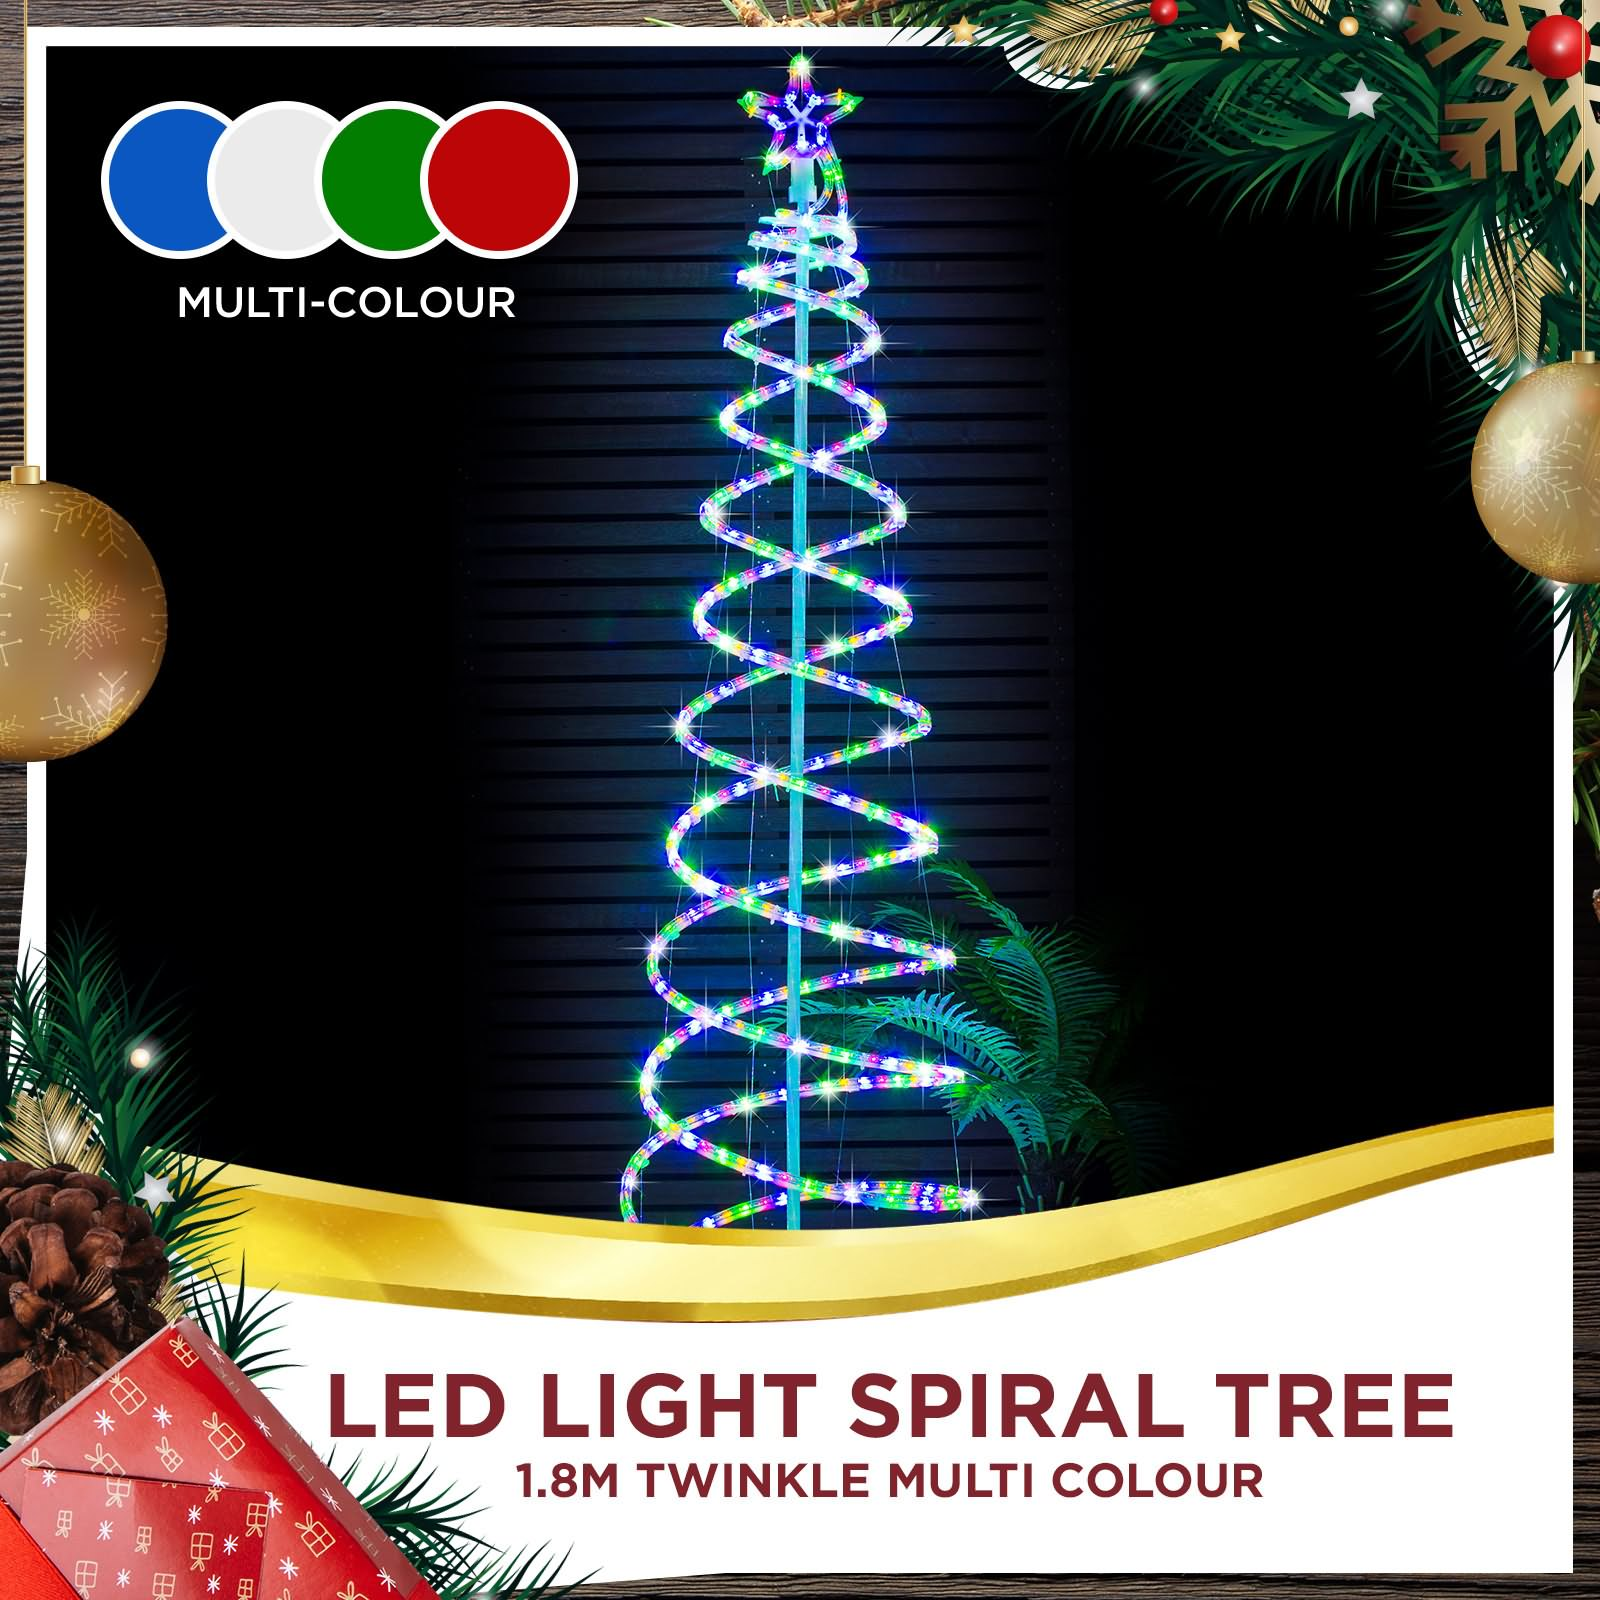 LED Christmas Lights Spiral Rope Light Tree 1.8m Twinkle ...